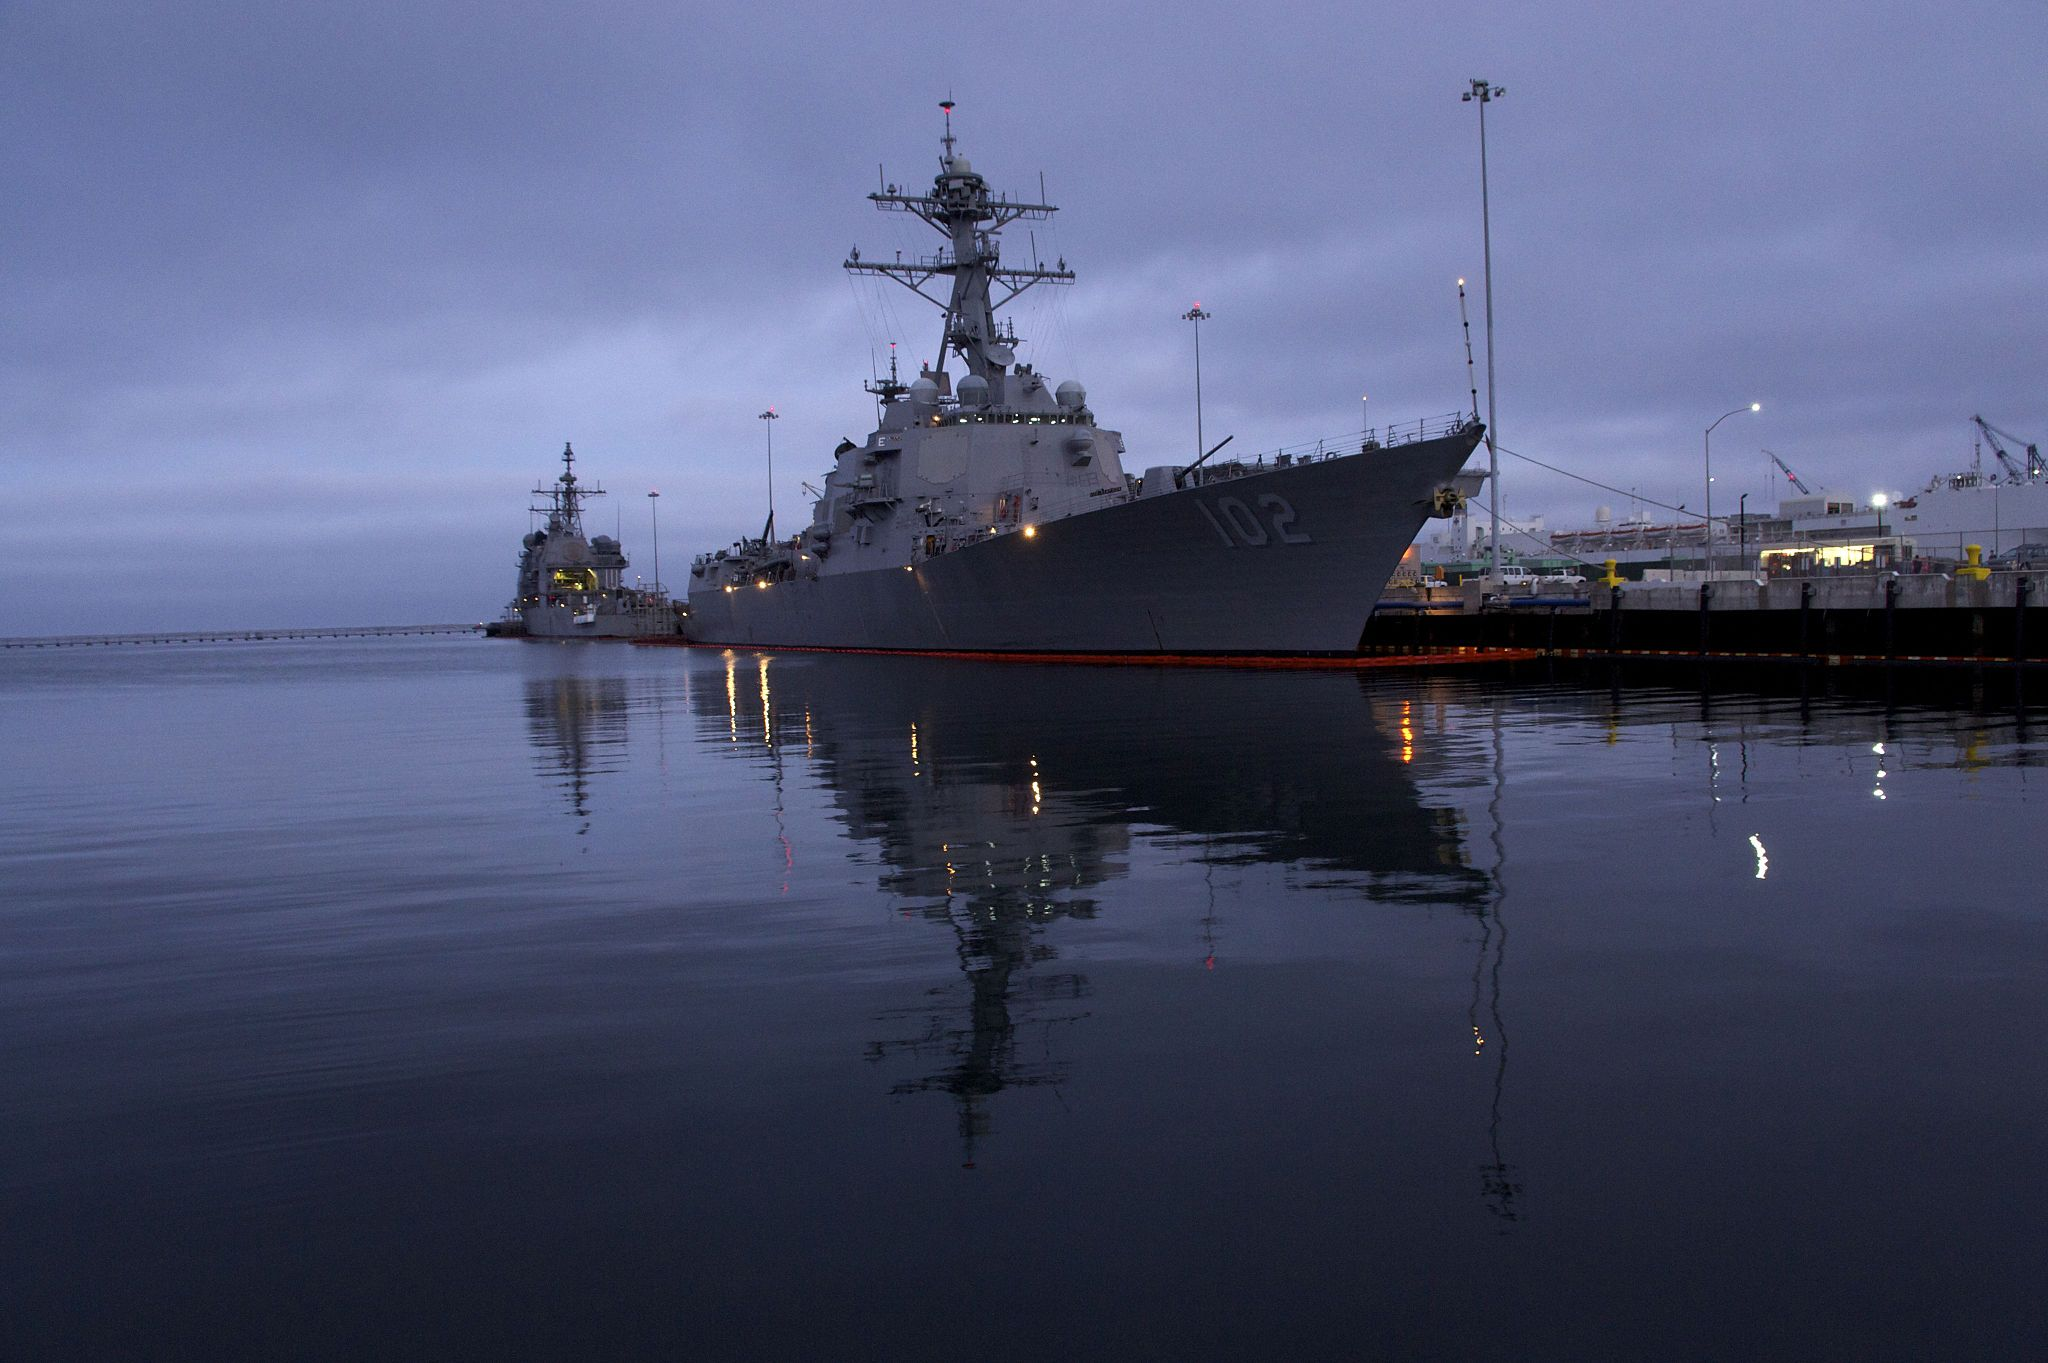 USS Sampson (DDG-102) moored at Naval Station San Diego, Calif. in 2011. US Navy Photo